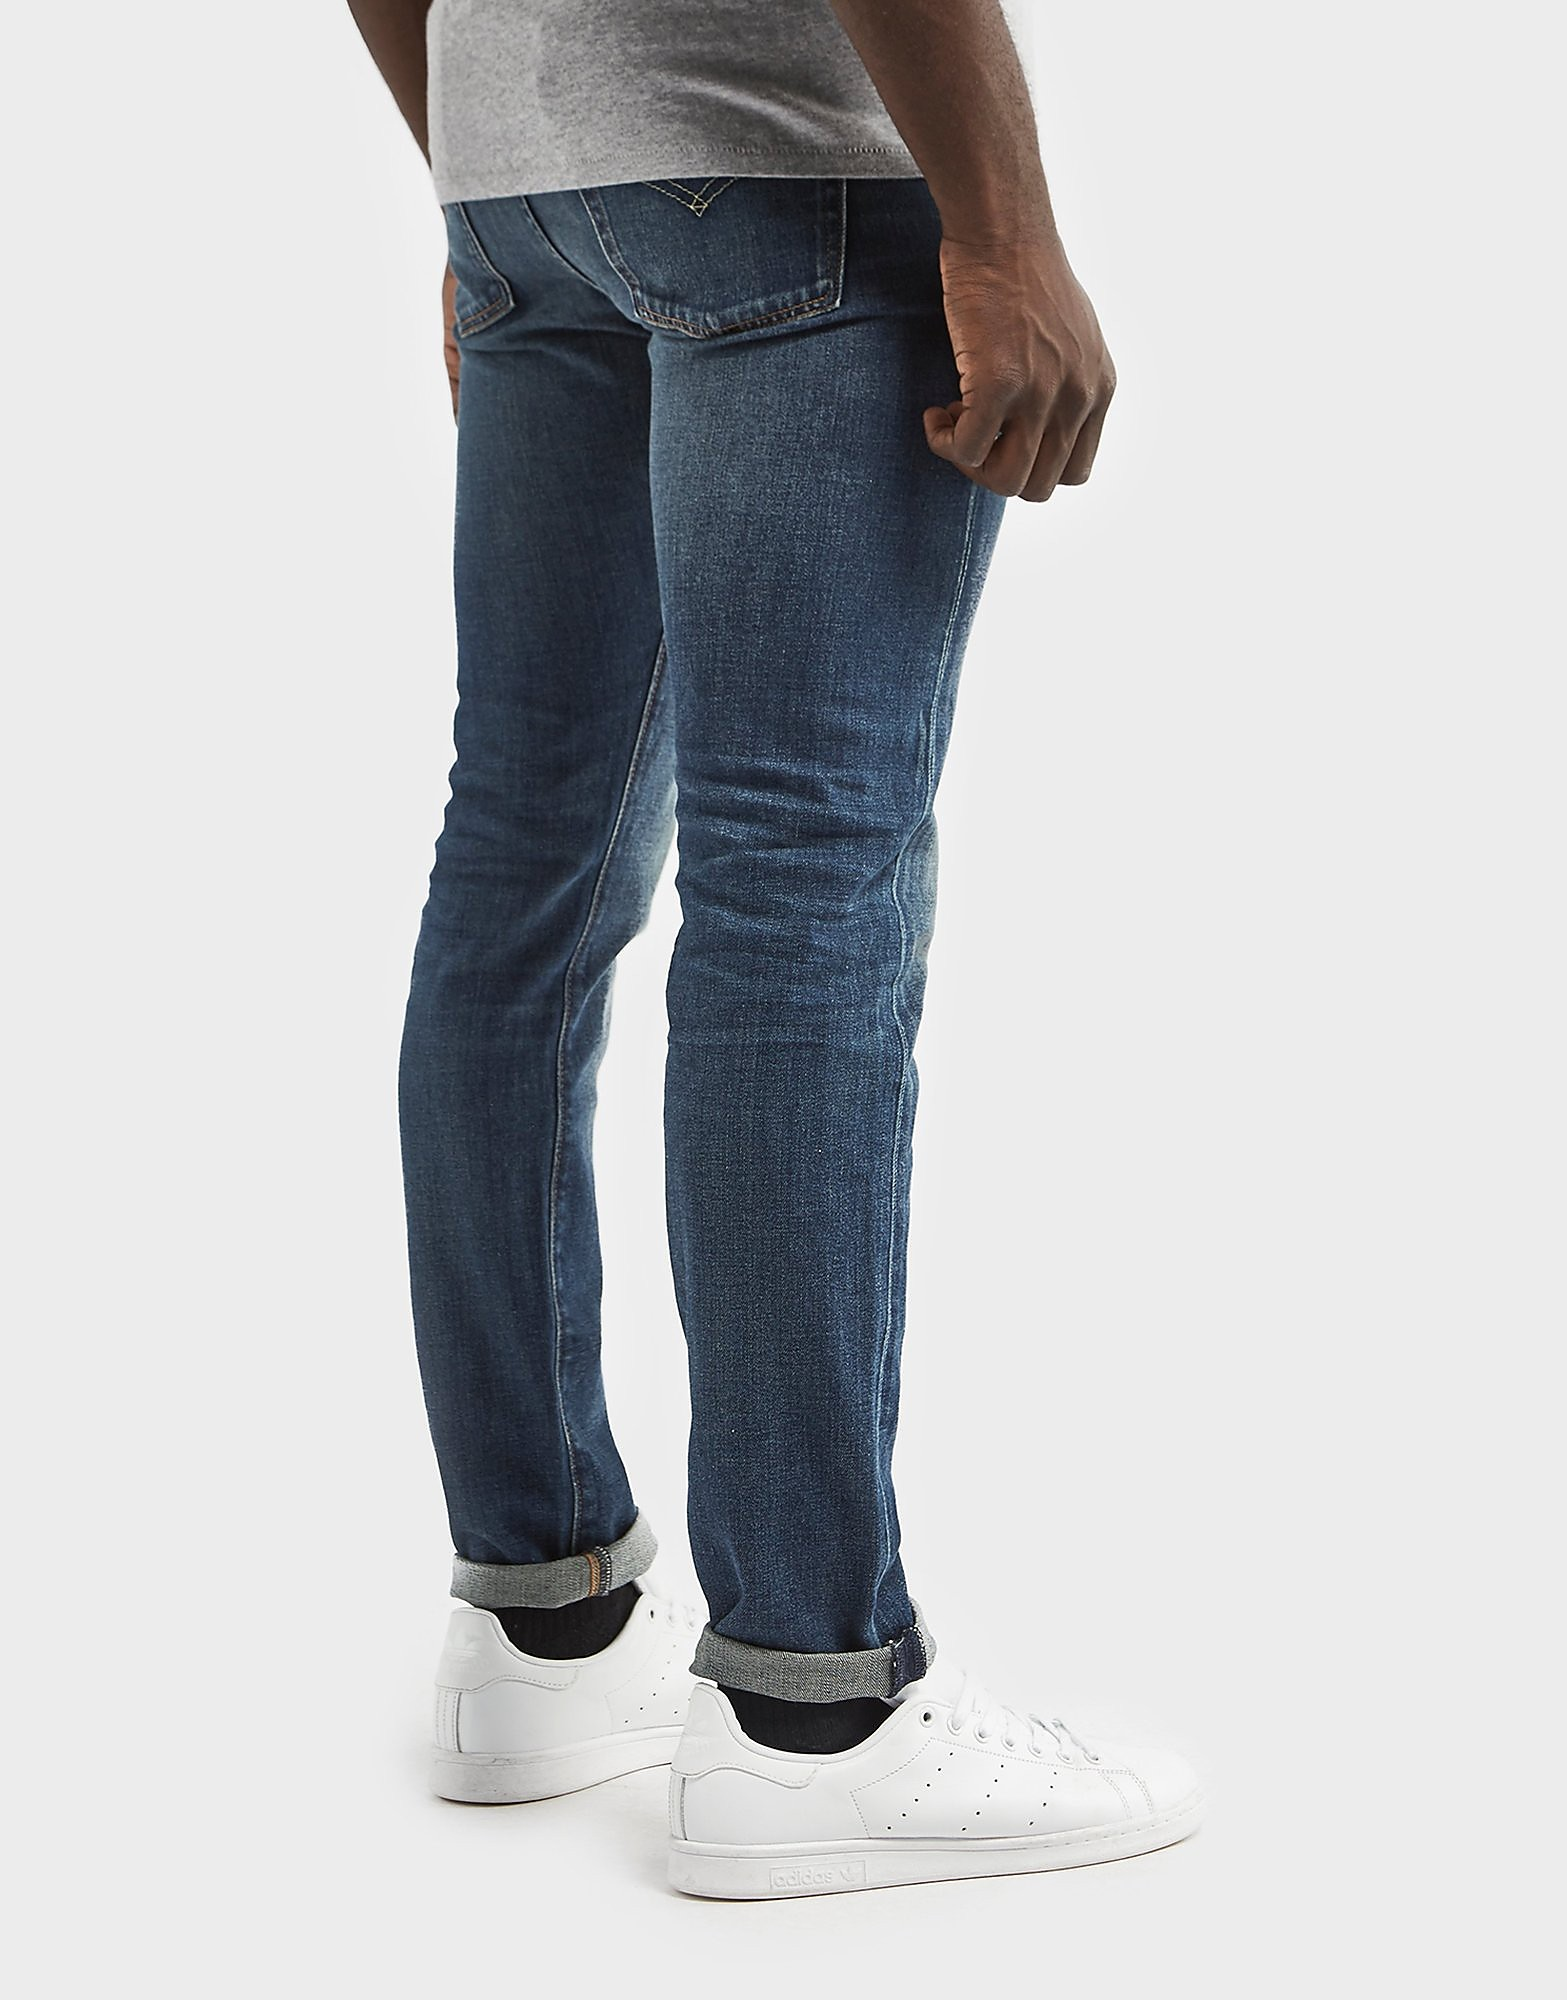 Levis 510 Madison Skinny Jeans